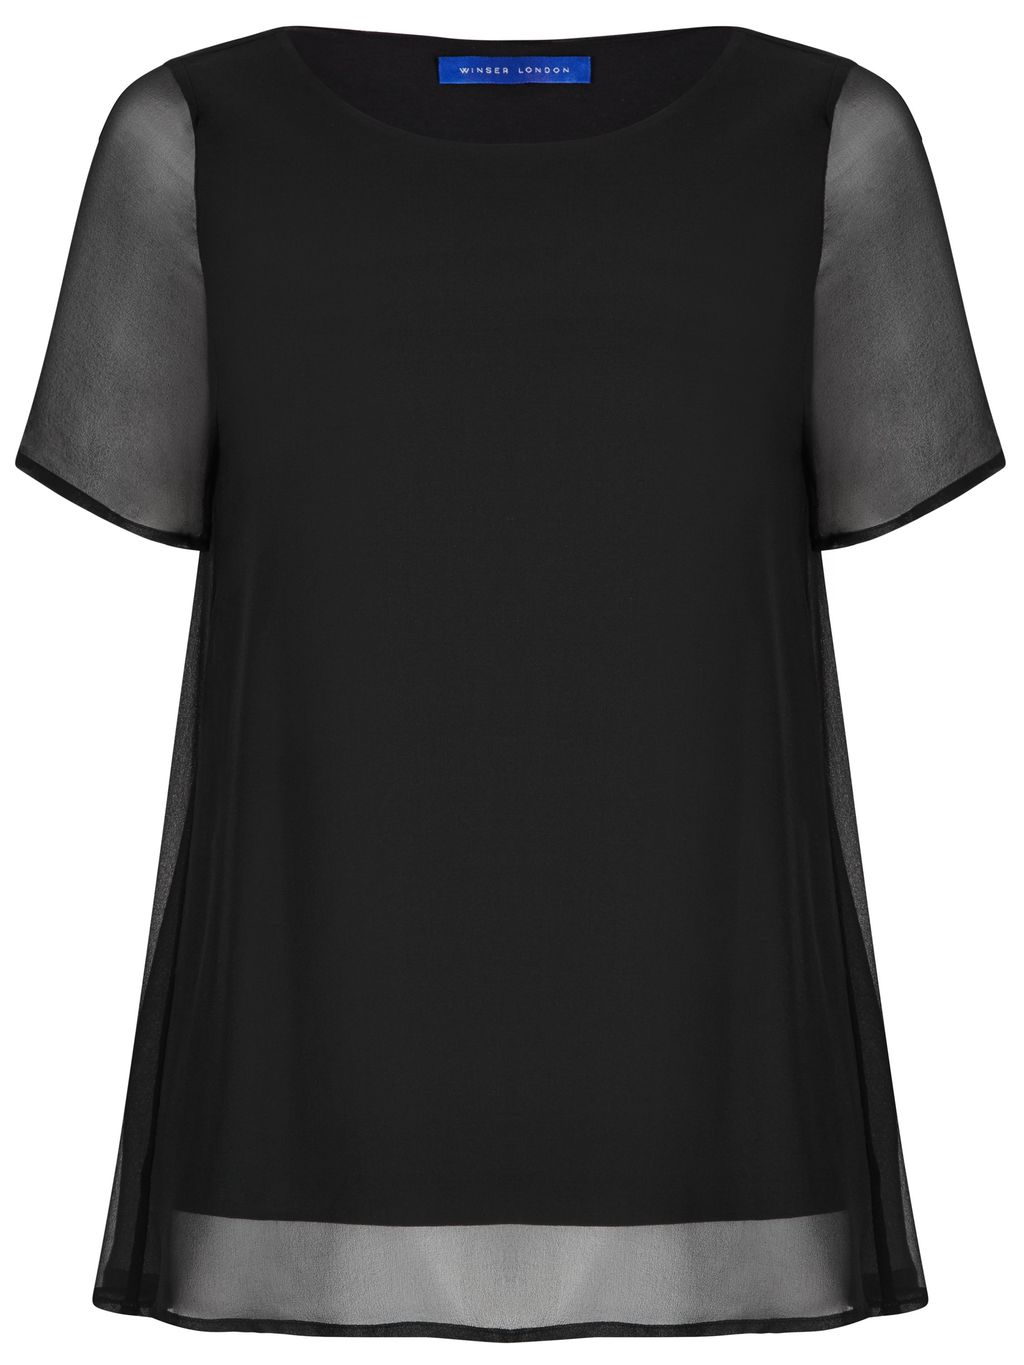 Silk Chiffon A Line Top, Black - pattern: plain; predominant colour: black; occasions: evening; length: standard; style: top; fibres: silk - 100%; fit: body skimming; neckline: crew; sleeve length: short sleeve; sleeve style: standard; texture group: sheer fabrics/chiffon/organza etc.; pattern type: fabric; shoulder detail: sheer at shoulder; season: s/s 2016; wardrobe: event